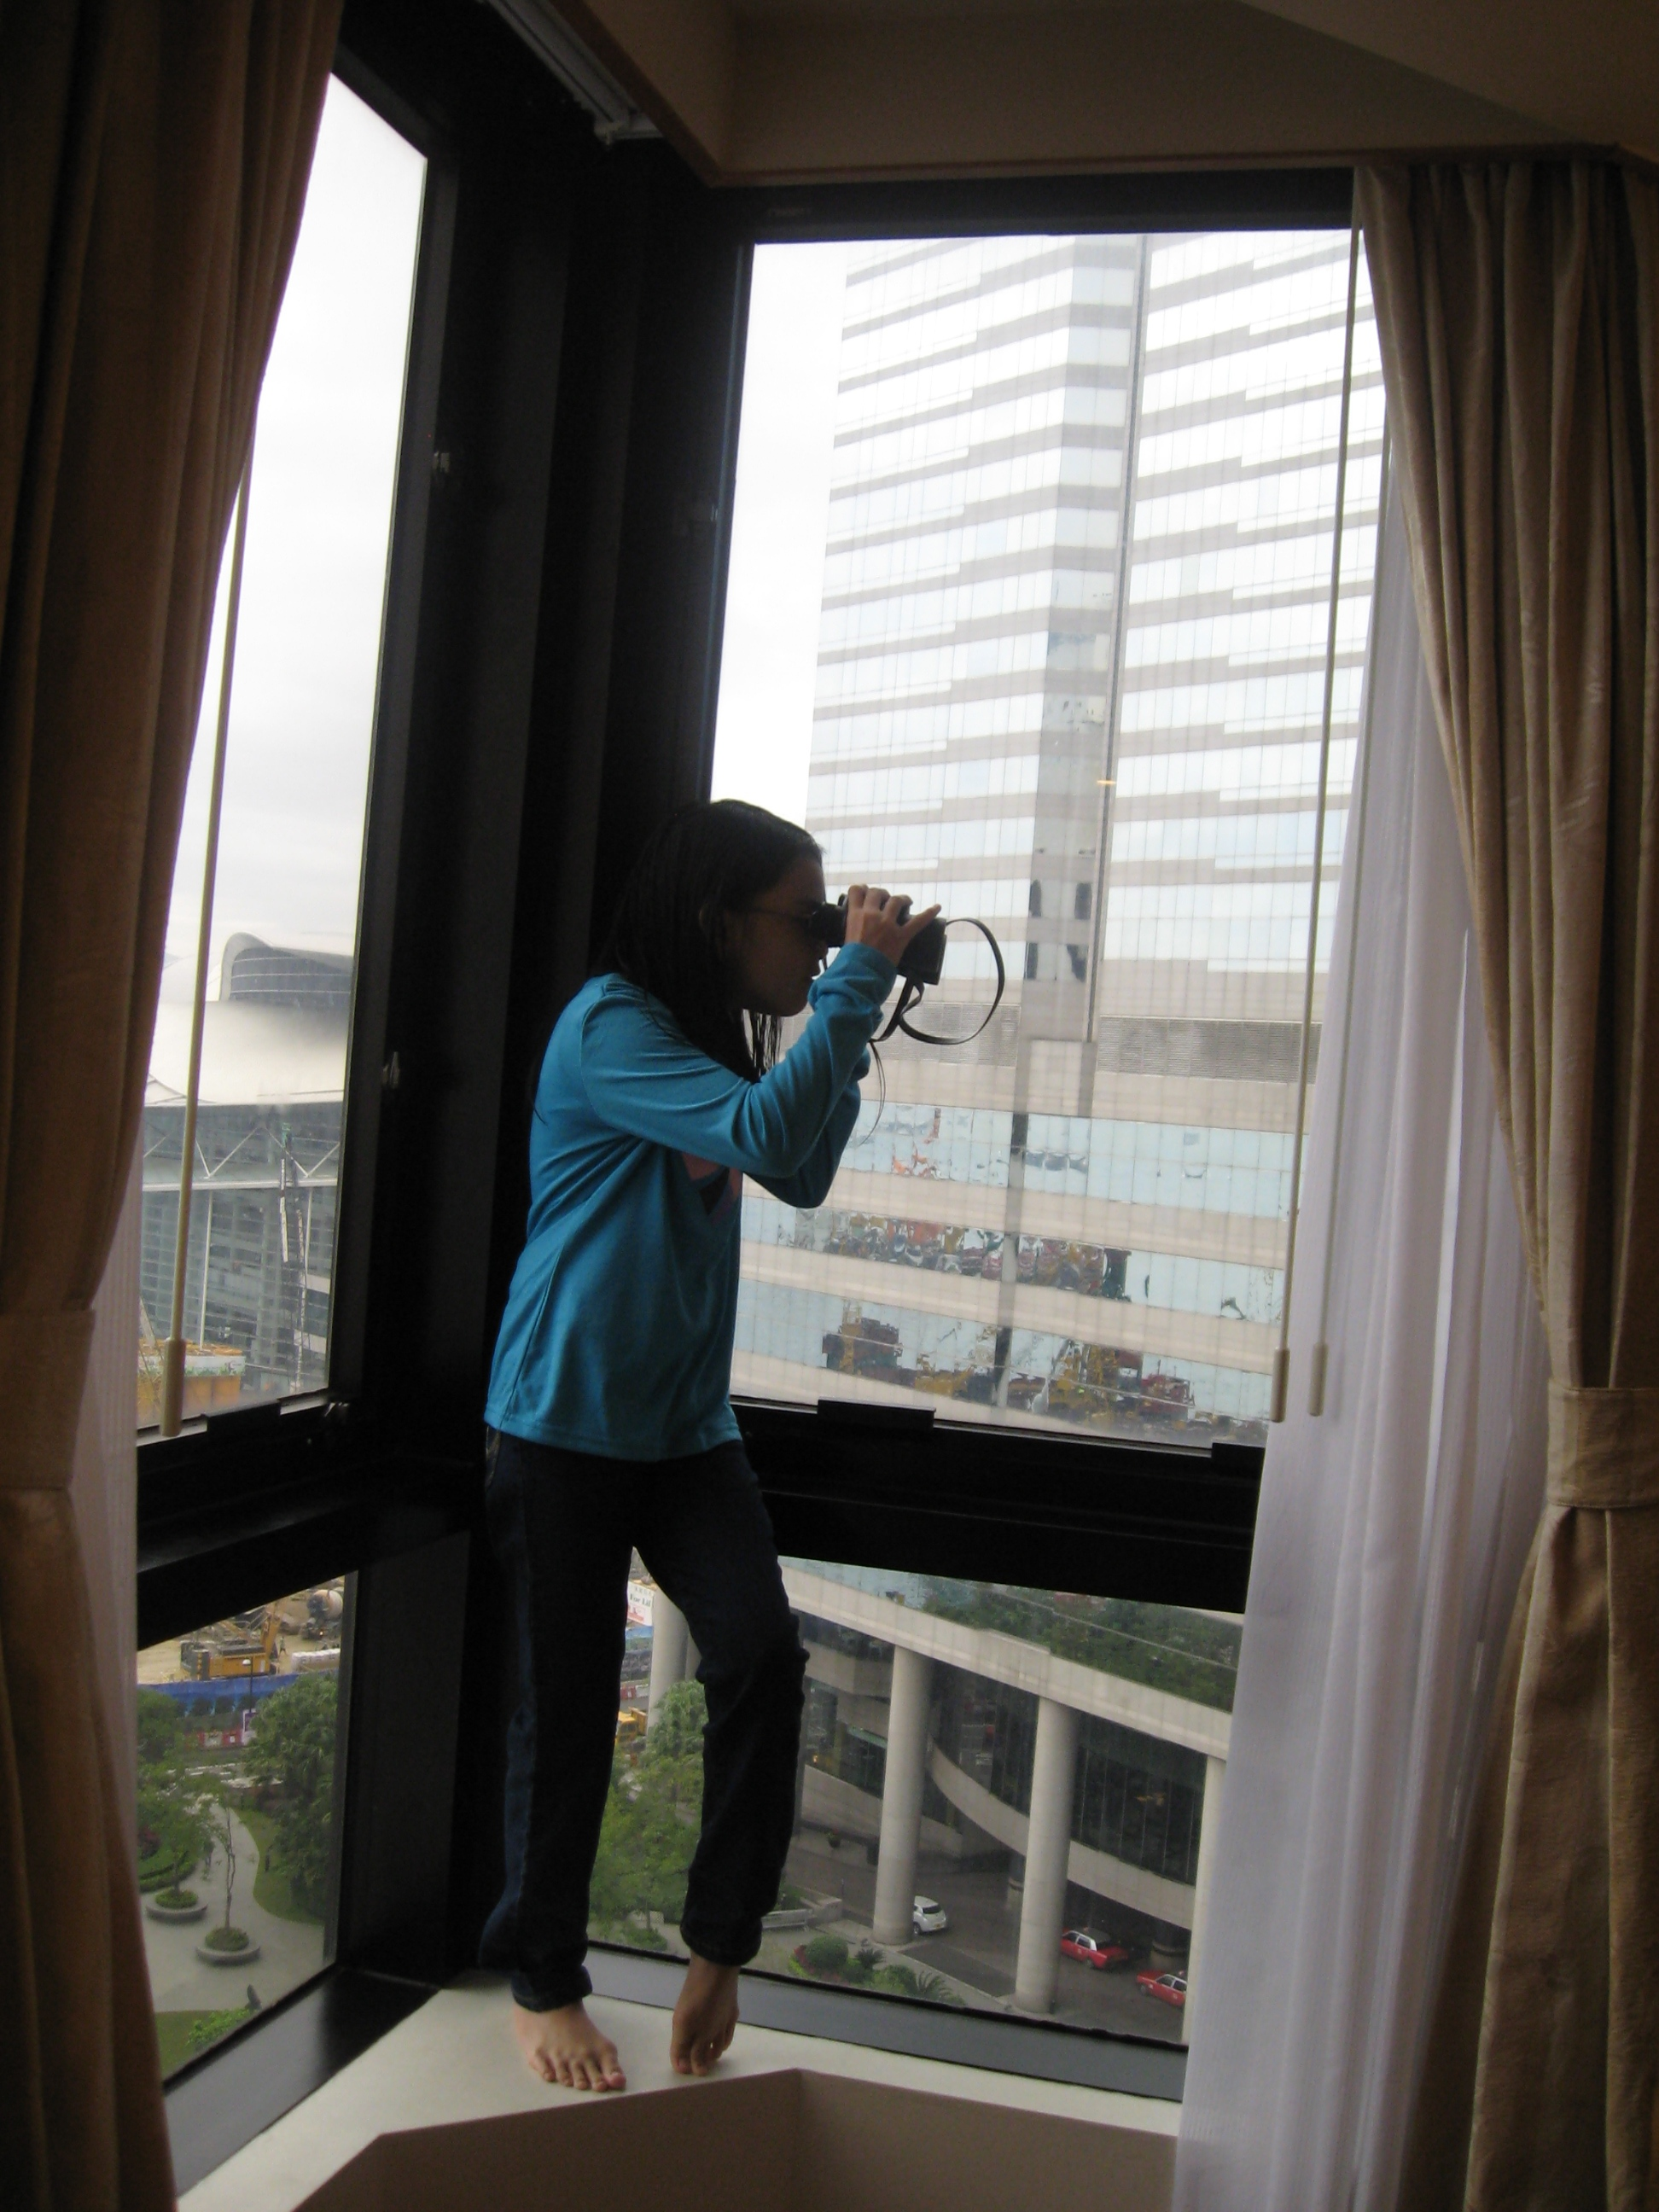 Looking for Black Kites from a hotel window in Hong Kong.